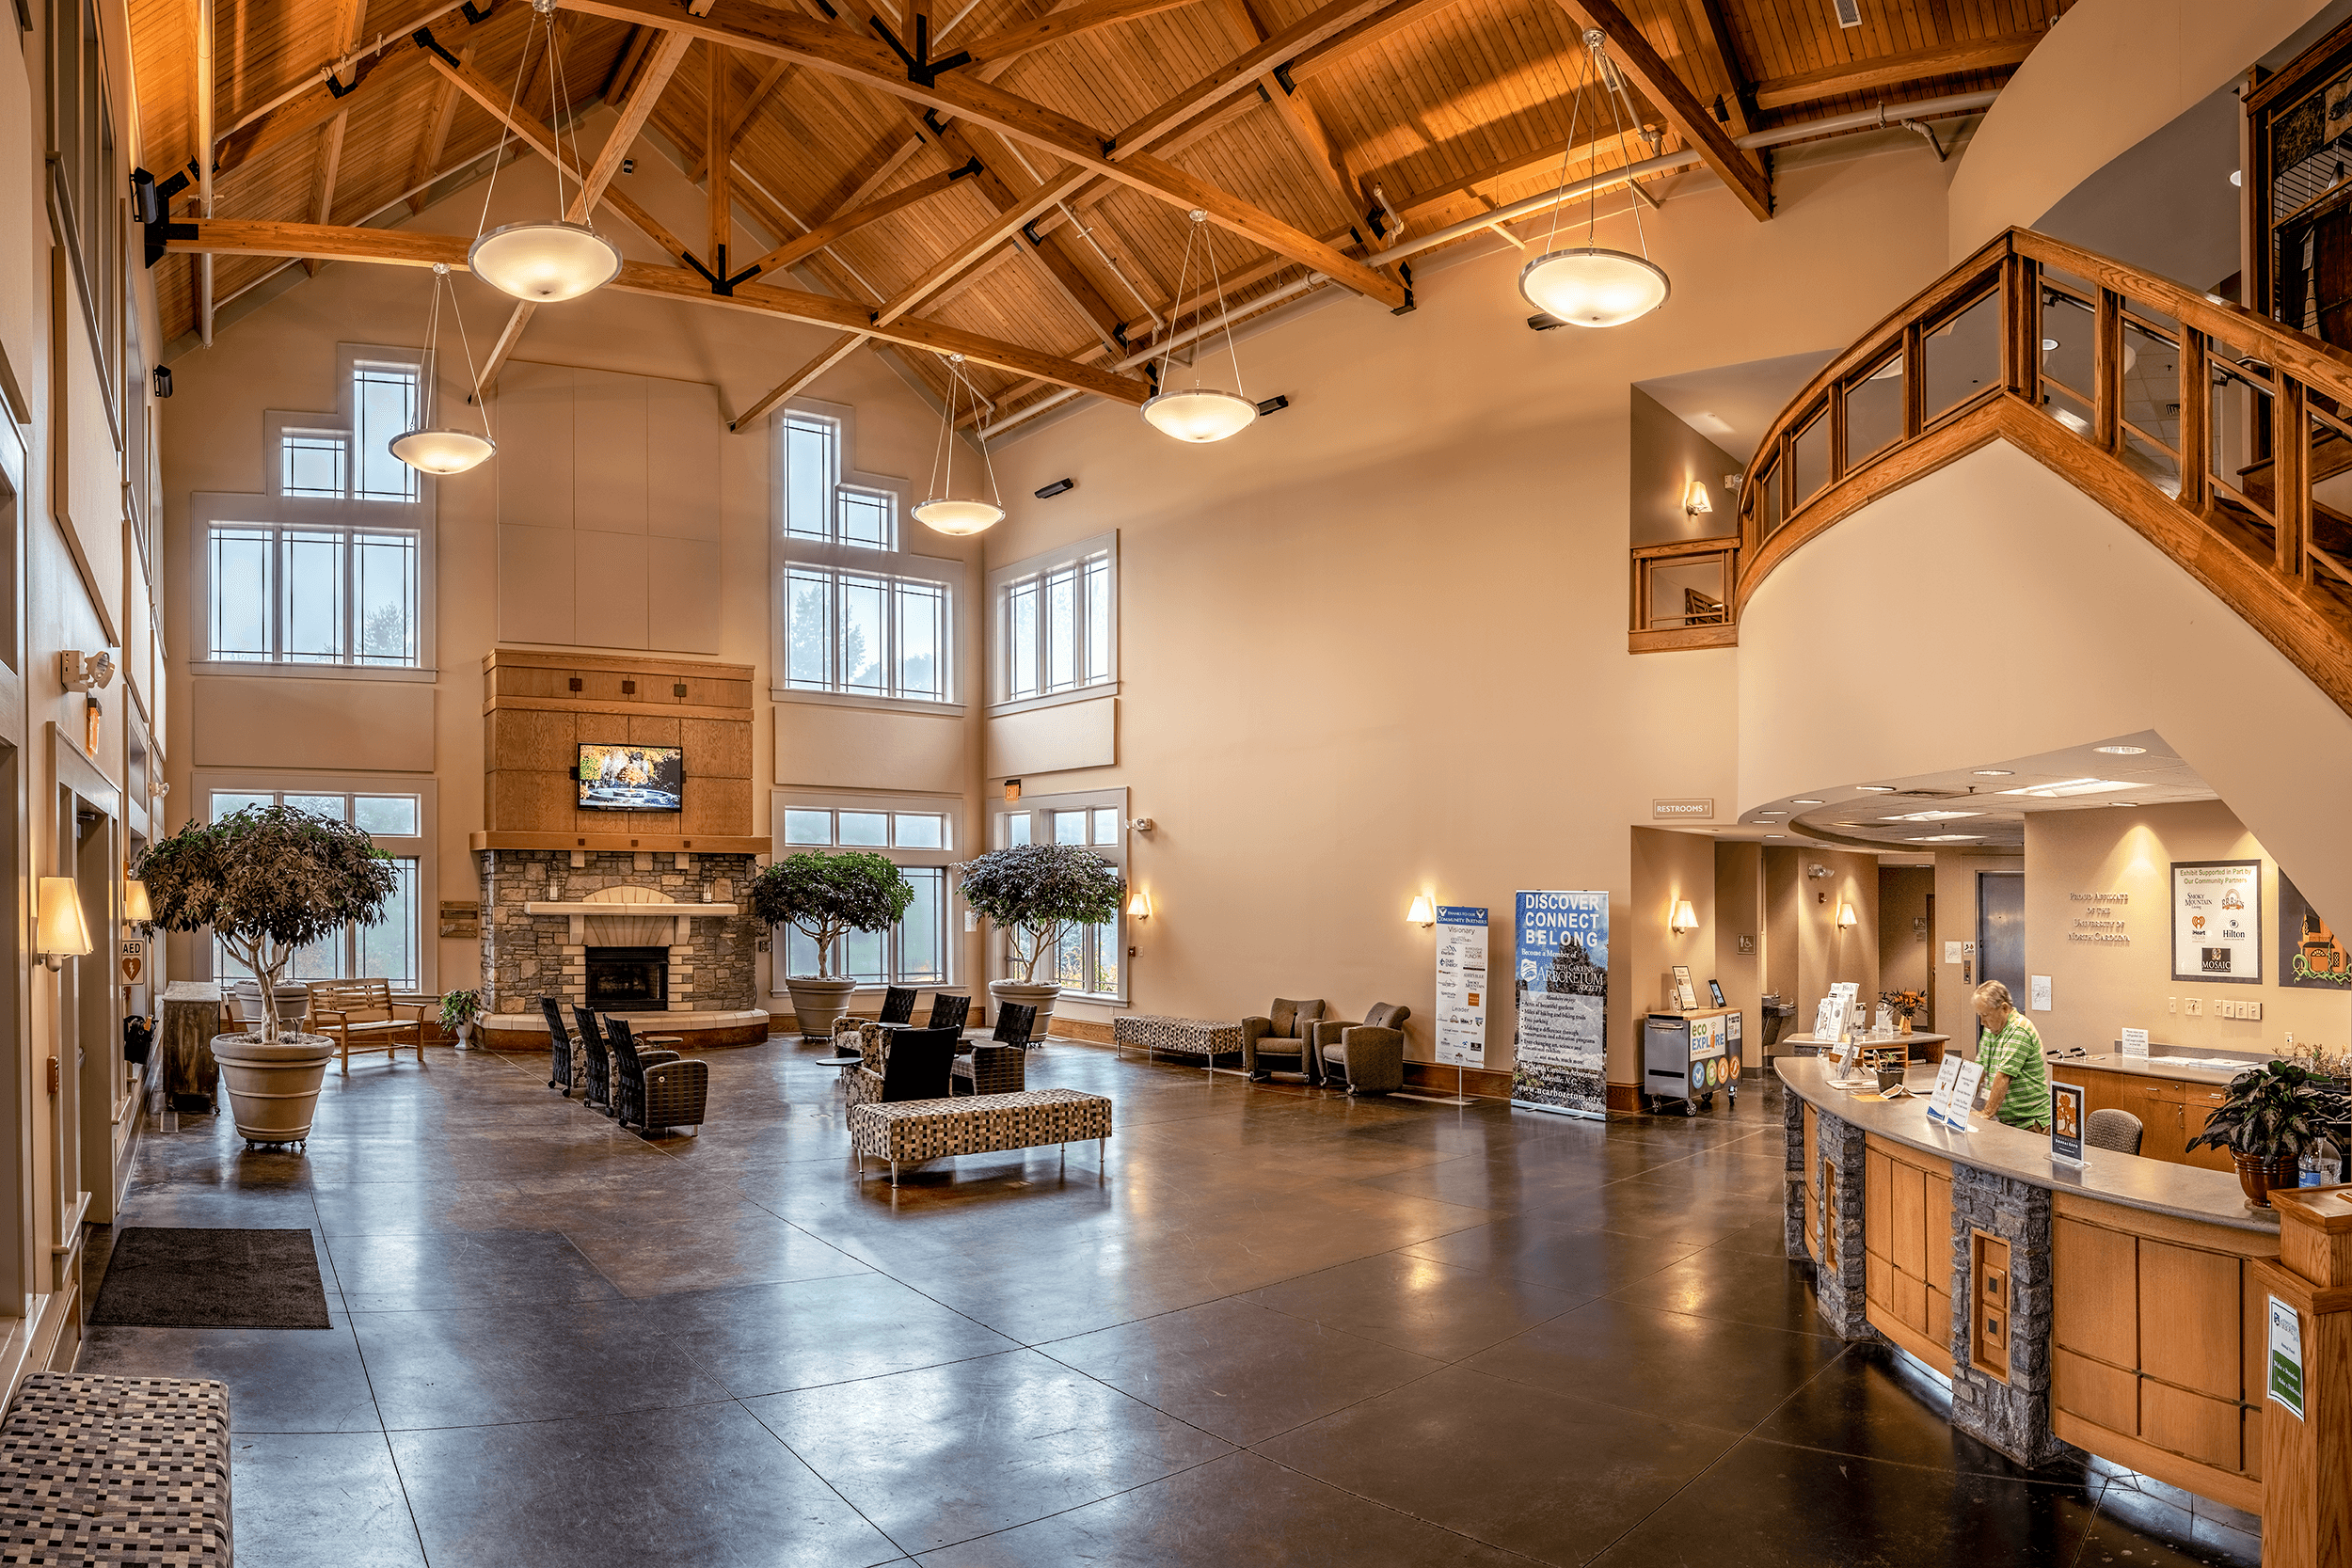 Inside the  Baker Exhibition Center  you can pick up trail maps and guides as well as purchase souvenirs from the  Connections Gallery  gift shop on the second floor. From the second floor, you have access to the  Baker Landscape  and the  Heritage Garden .